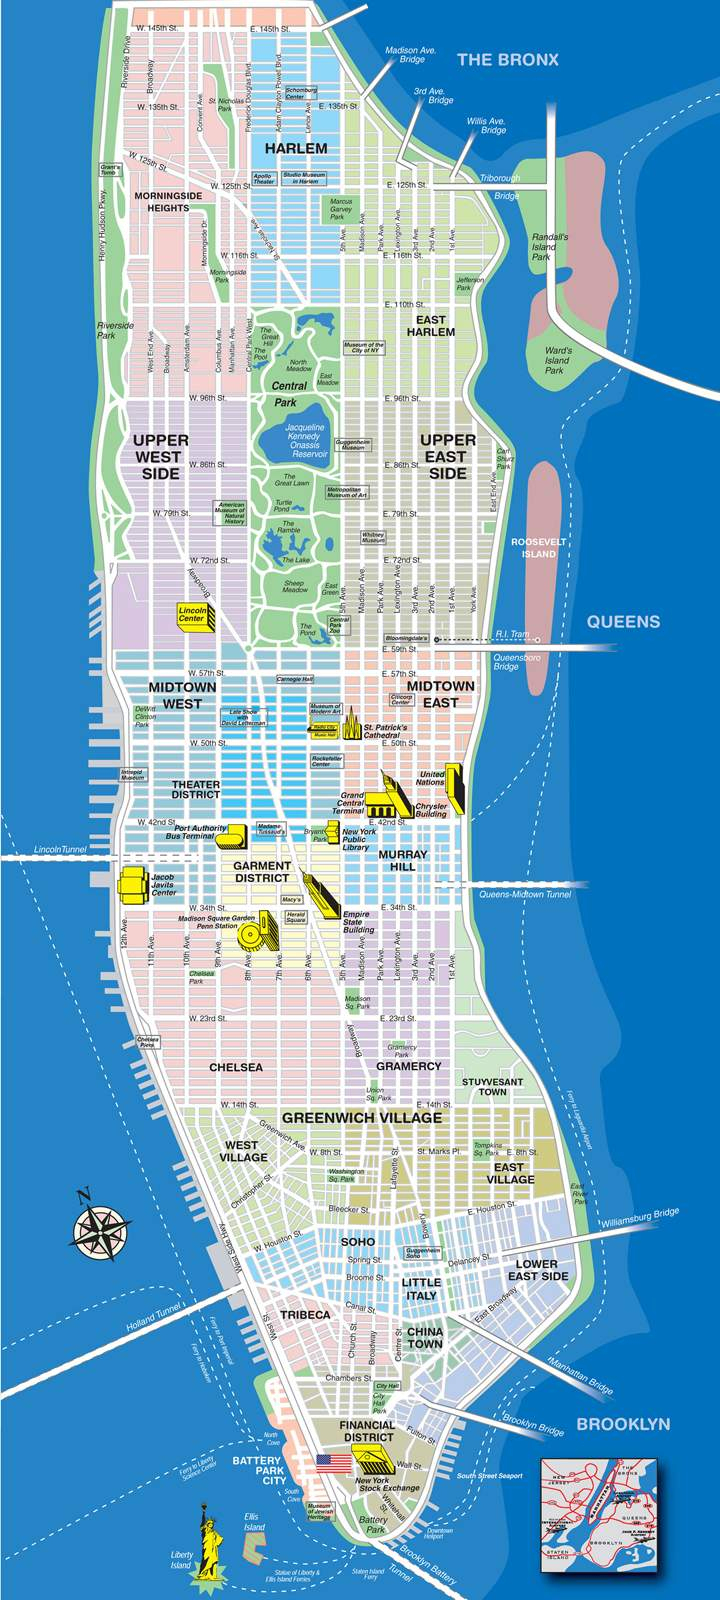 Large Manhattan Maps For Free Download And Print | High-Resolution - Nyc Tourist Map Printable